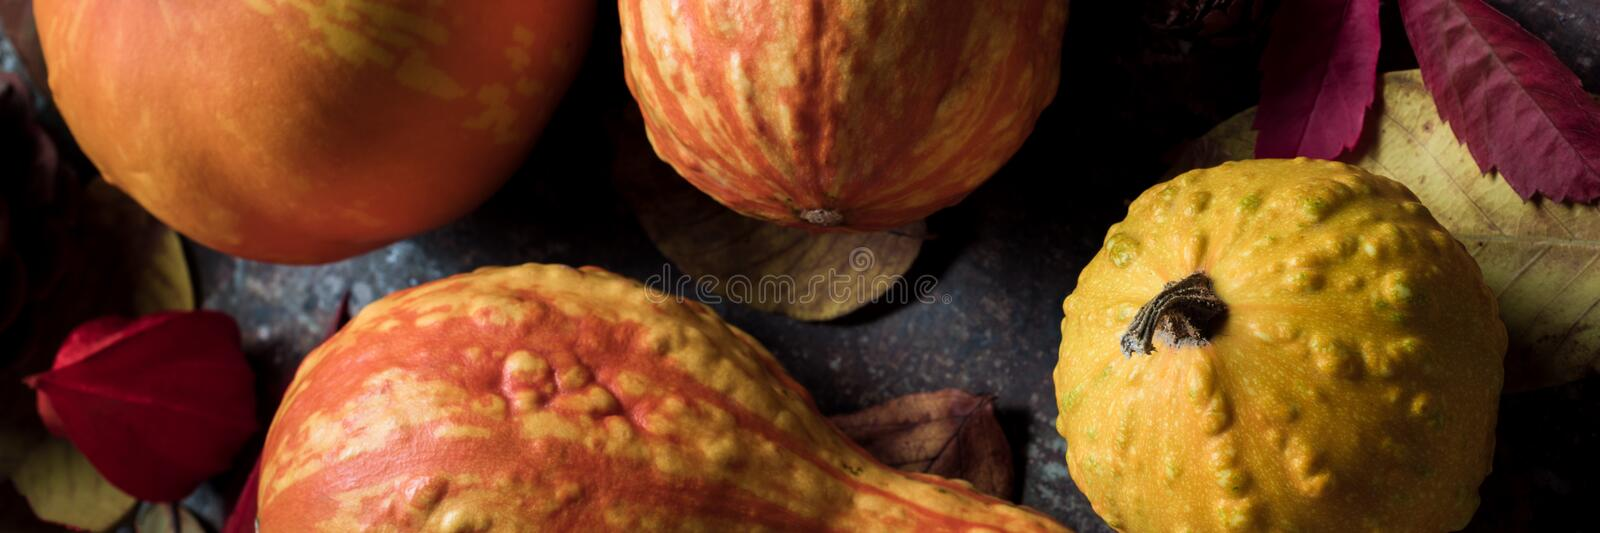 Happy Thanksgiving Banner. Selection of various pumpkins on dark metal background. Autumn Harvest and Holiday still life. Autumn vegetables stock photo